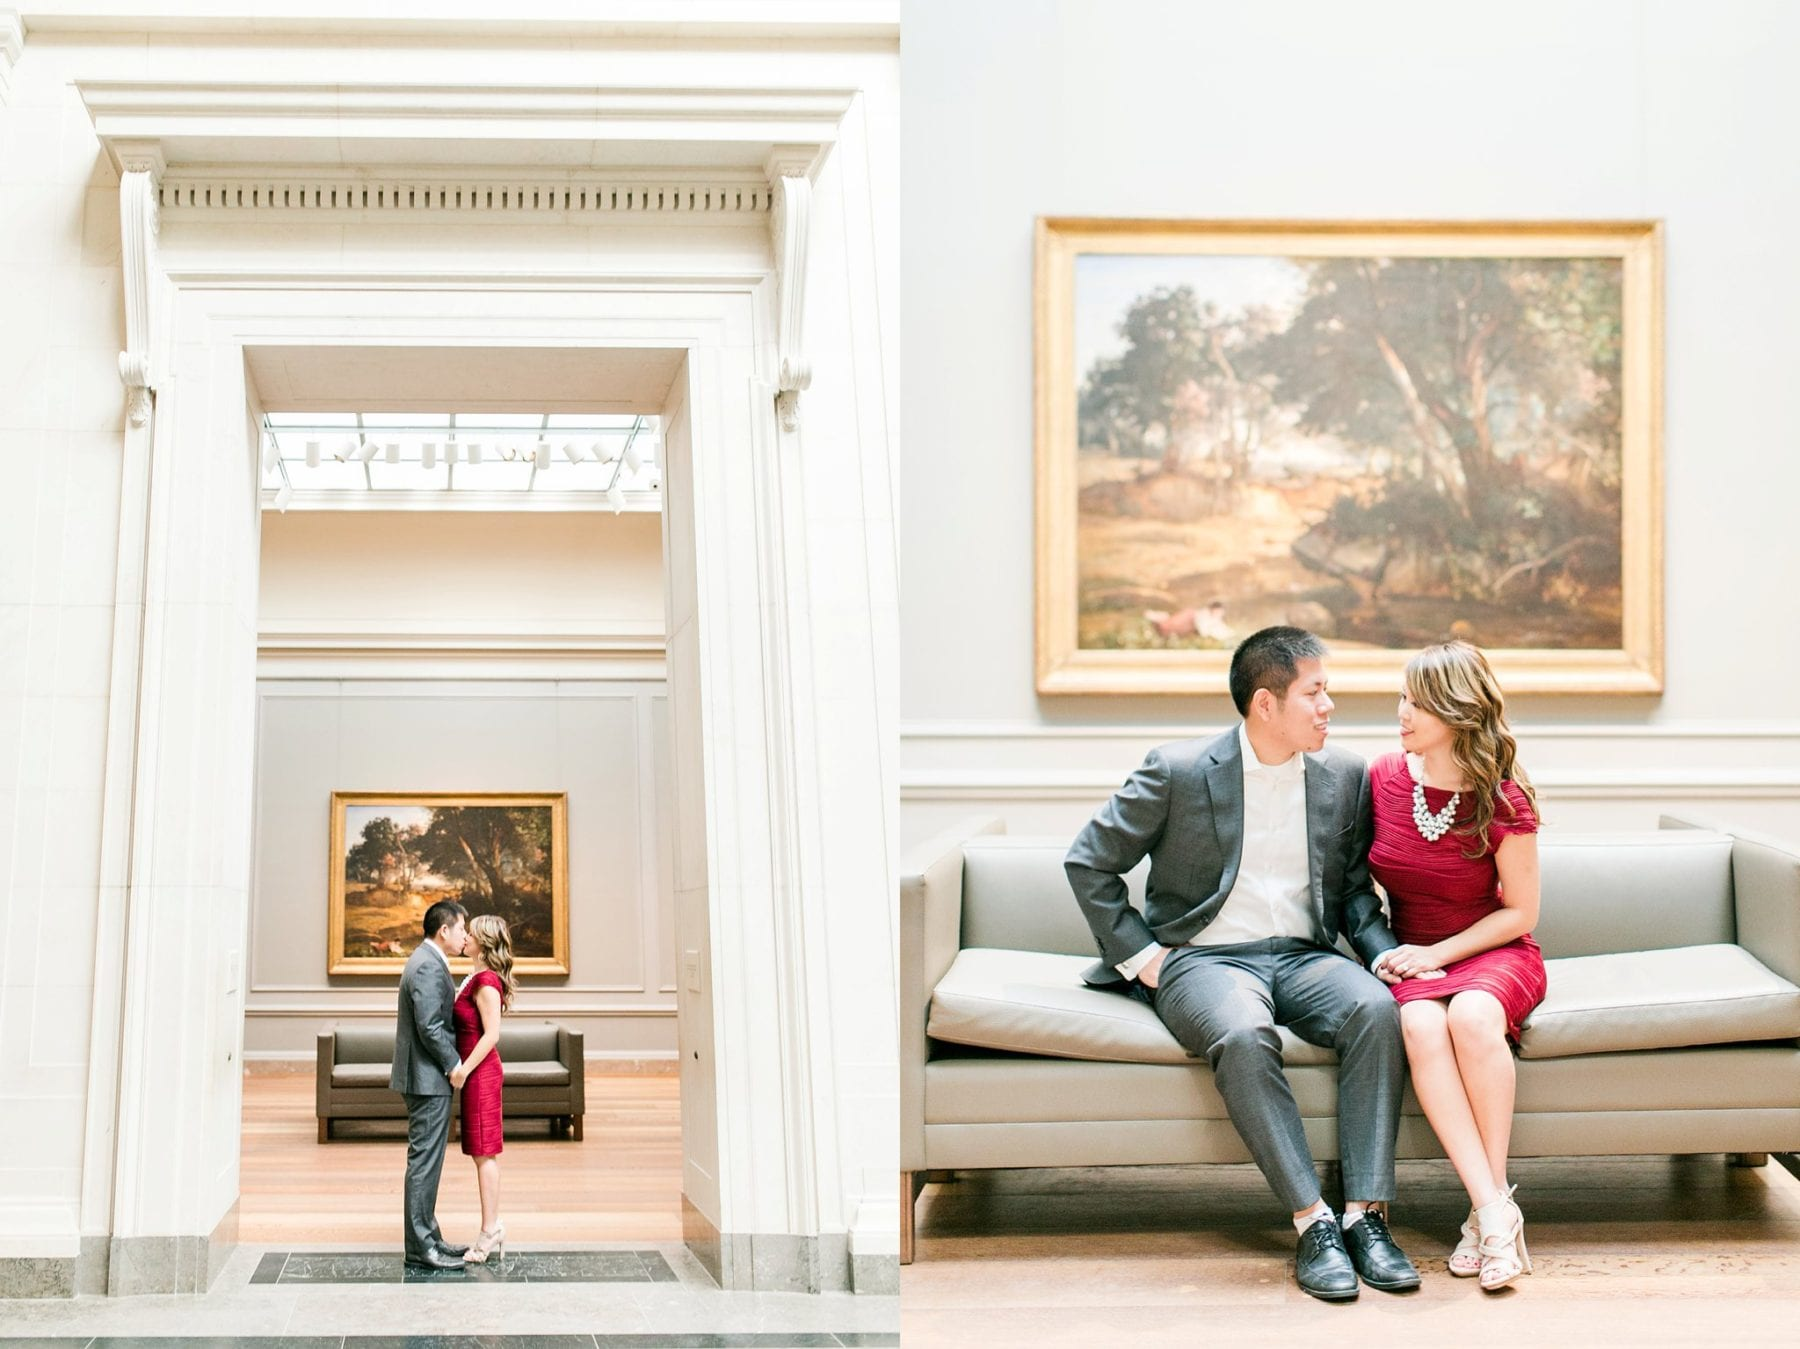 National Gallery of Art Engagement Photos Megan Kelsey Photography Washington DC Wedding Photographer Sy-yu & Anthony-116.jpg